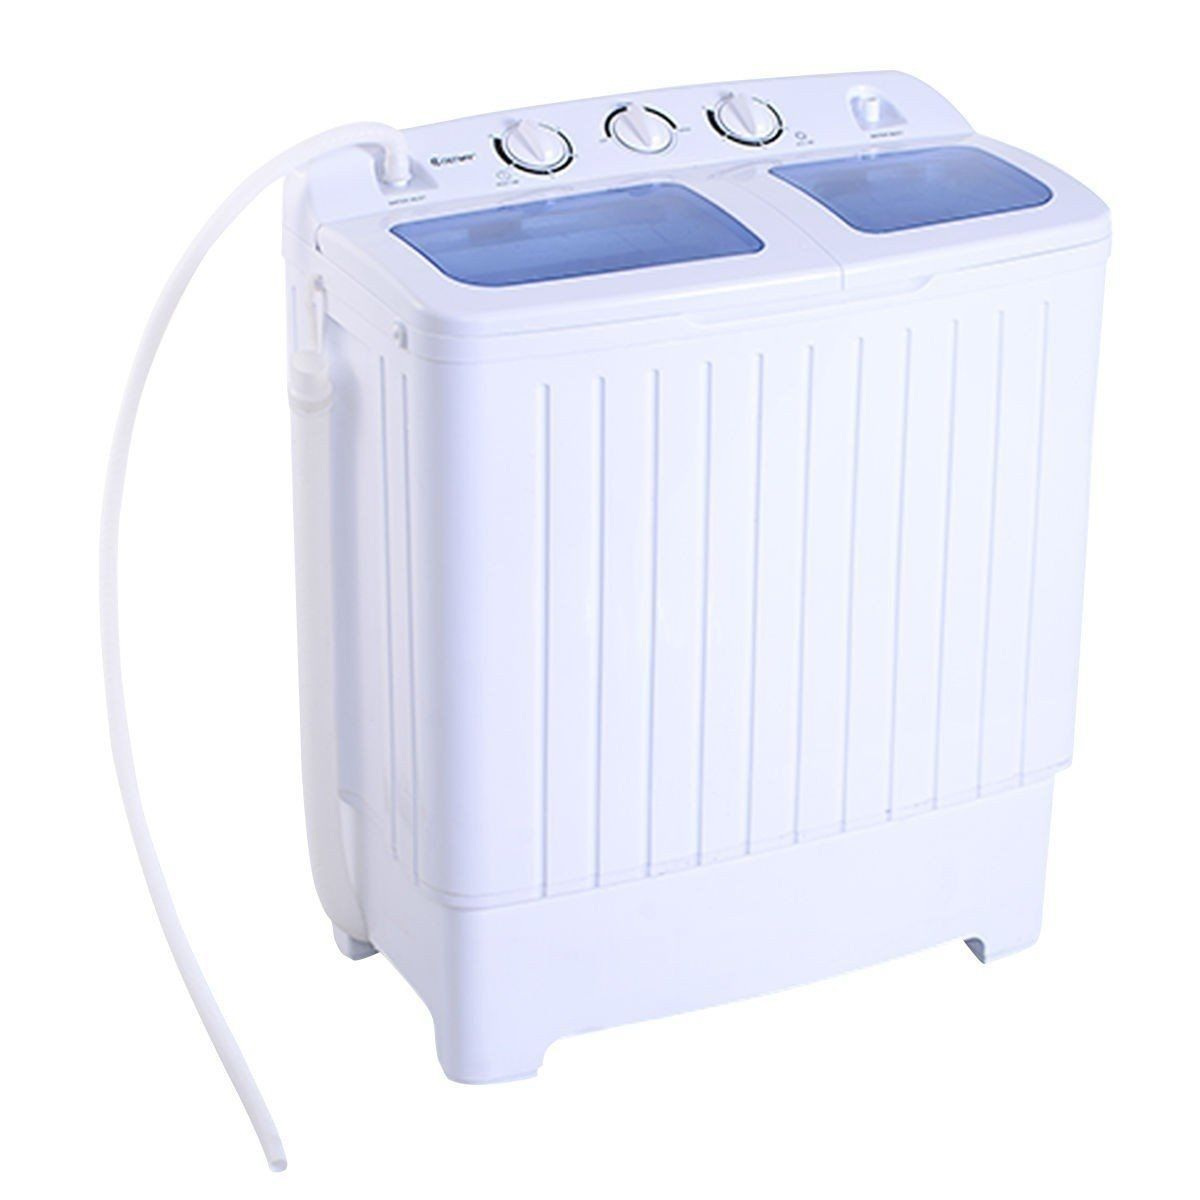 Portable washing machine washer and clothes dryer top loading electric compact washer dryer sets - Small space washing machines set ...